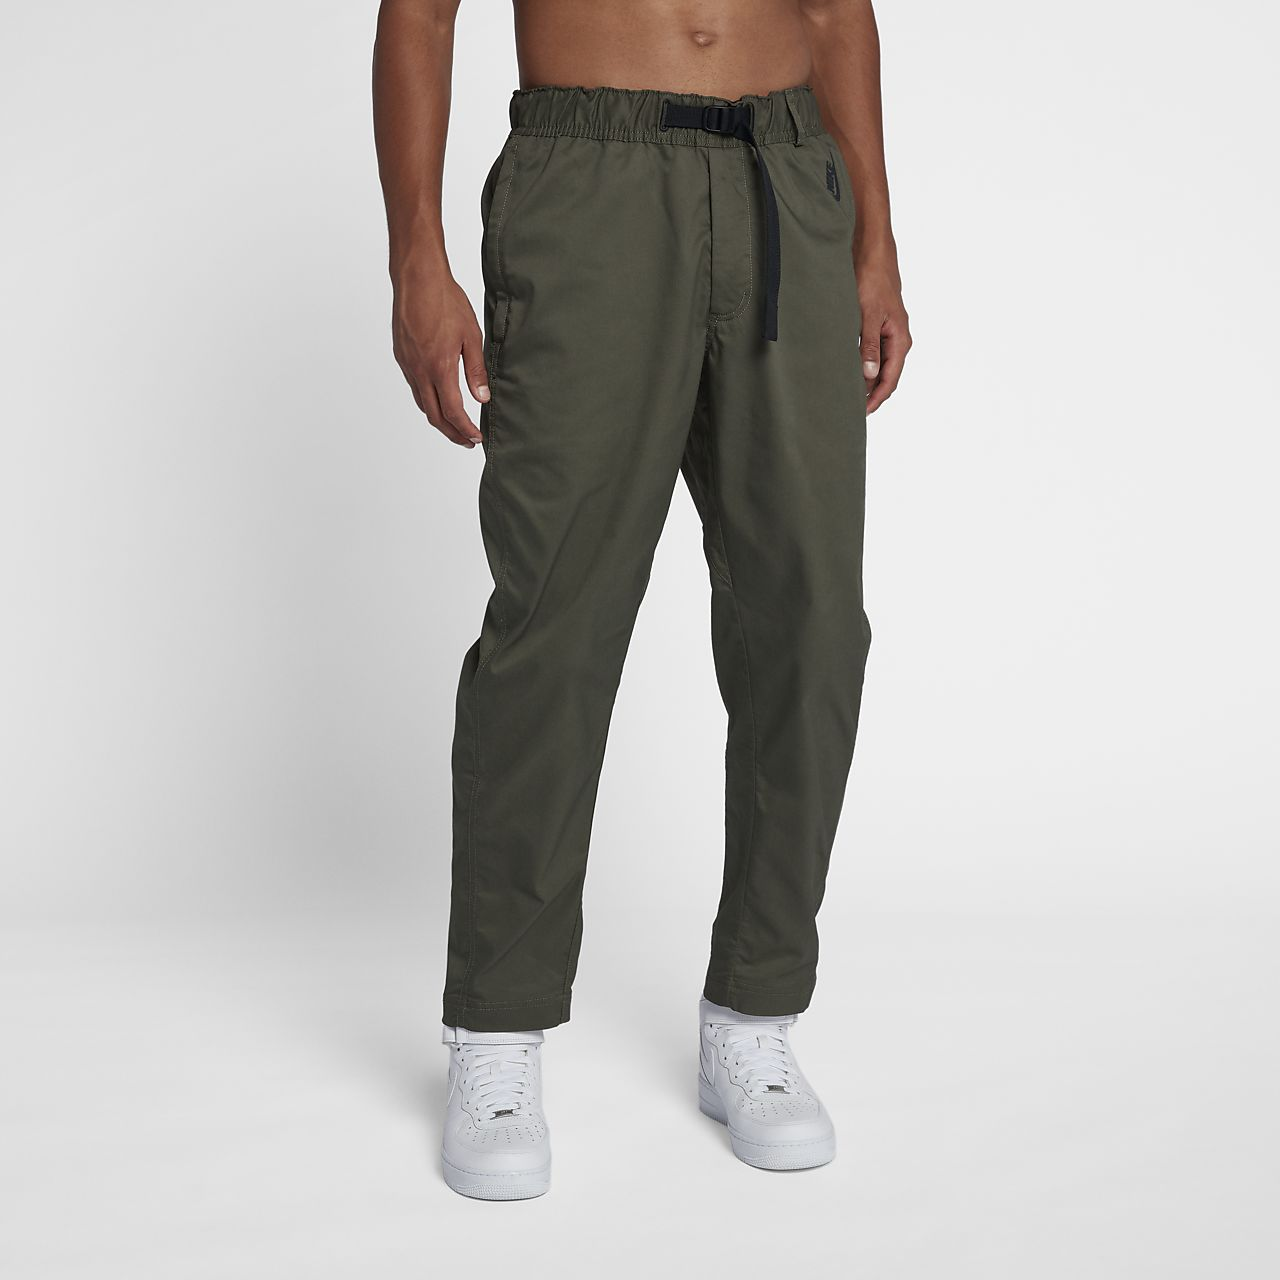 NikeLab Collection Pantalons de teixit Woven - Home